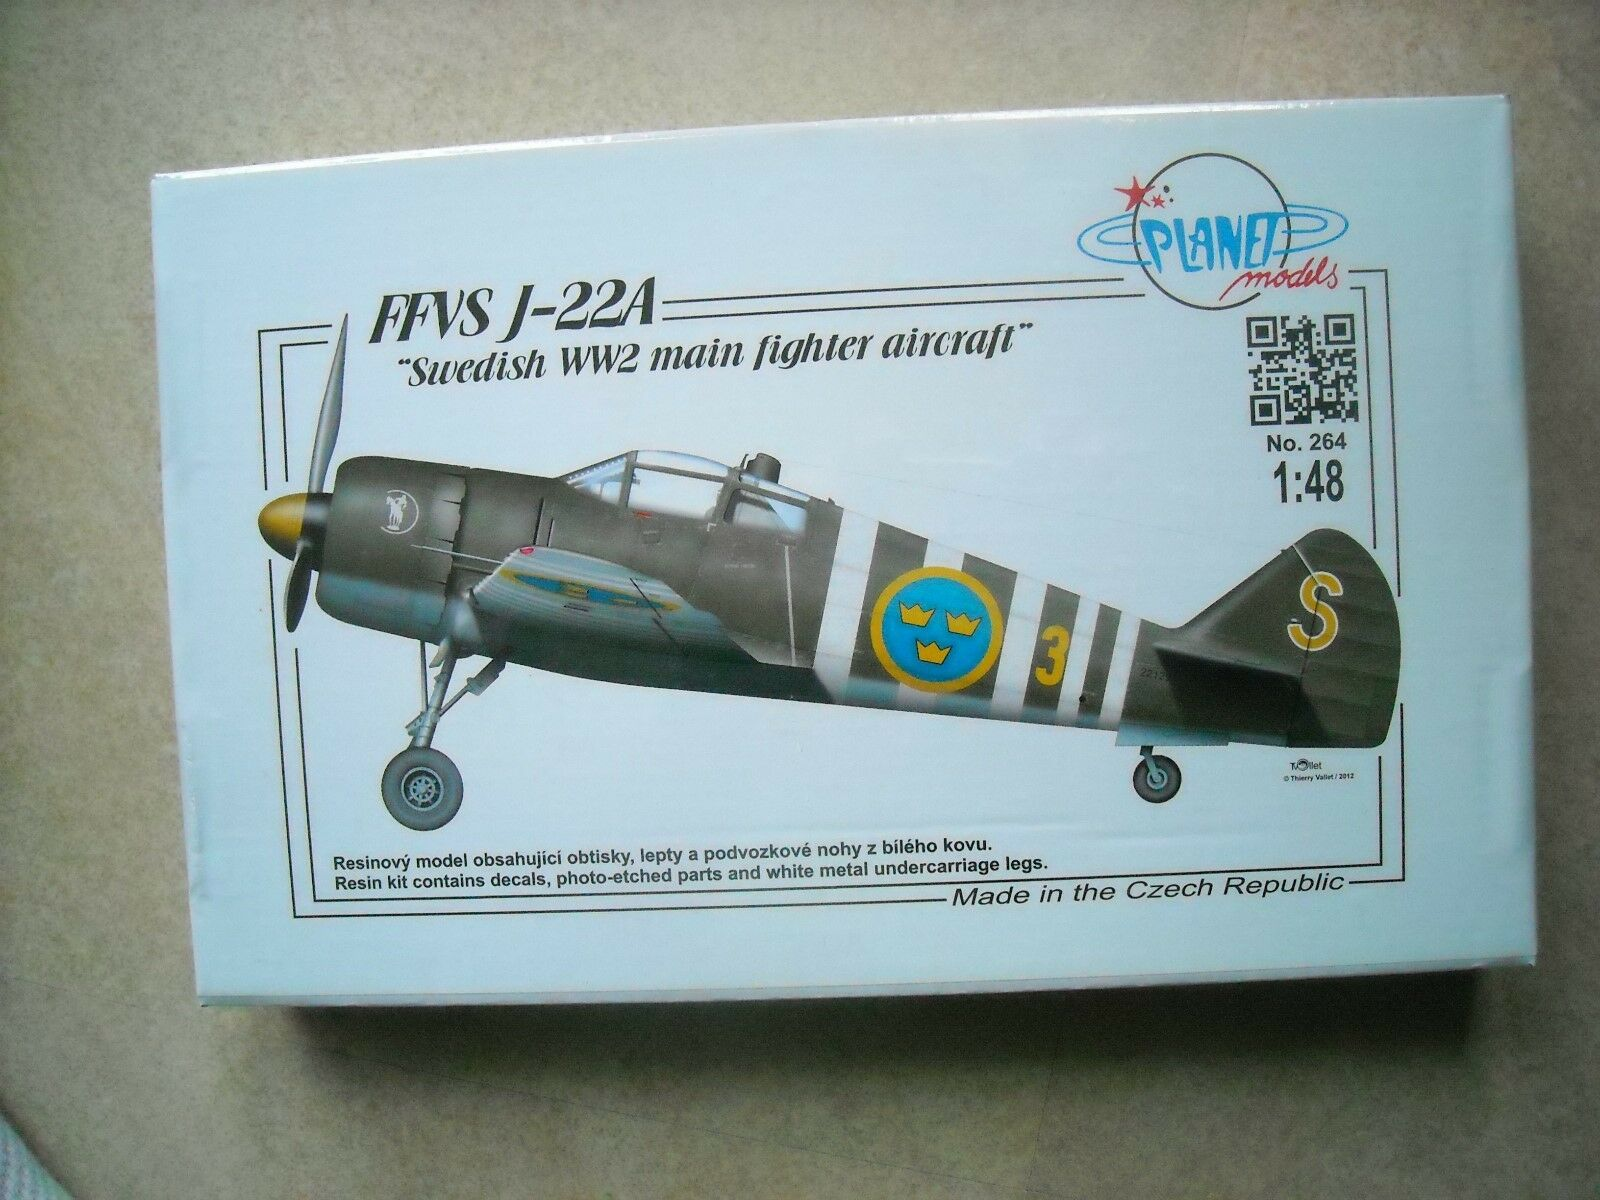 PLANET MODELS-1 48-FFVS J-22A SWEDISH MAIN FIGHTER AIRCRAFT